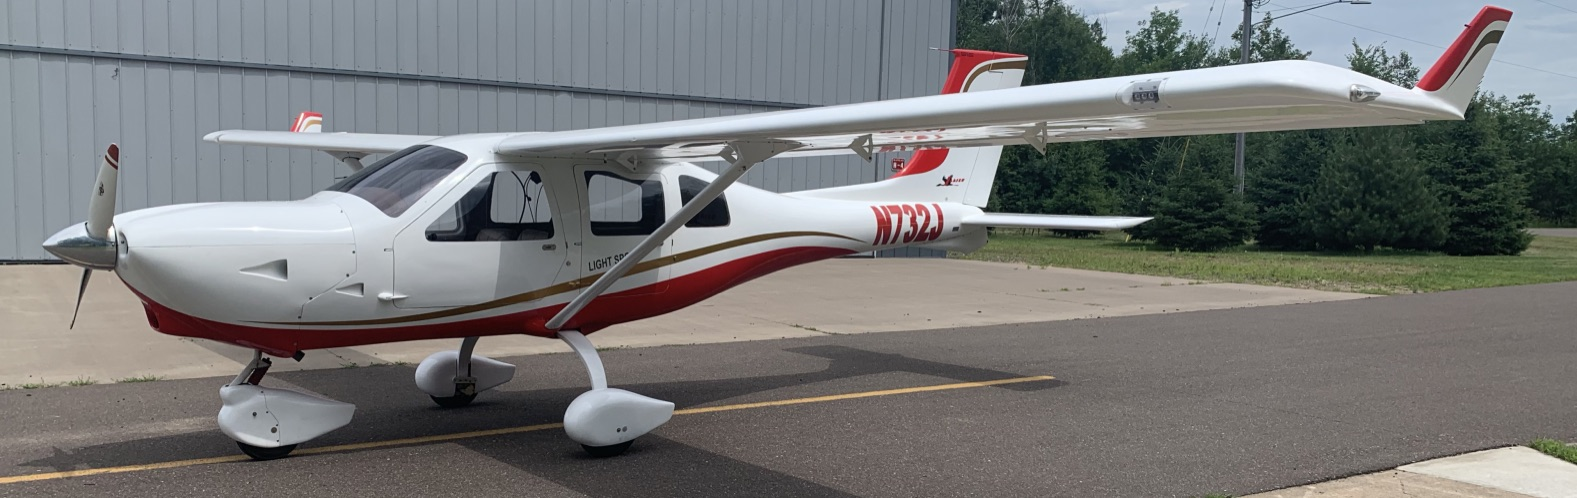 2011 J230-SP with Garmin G3X